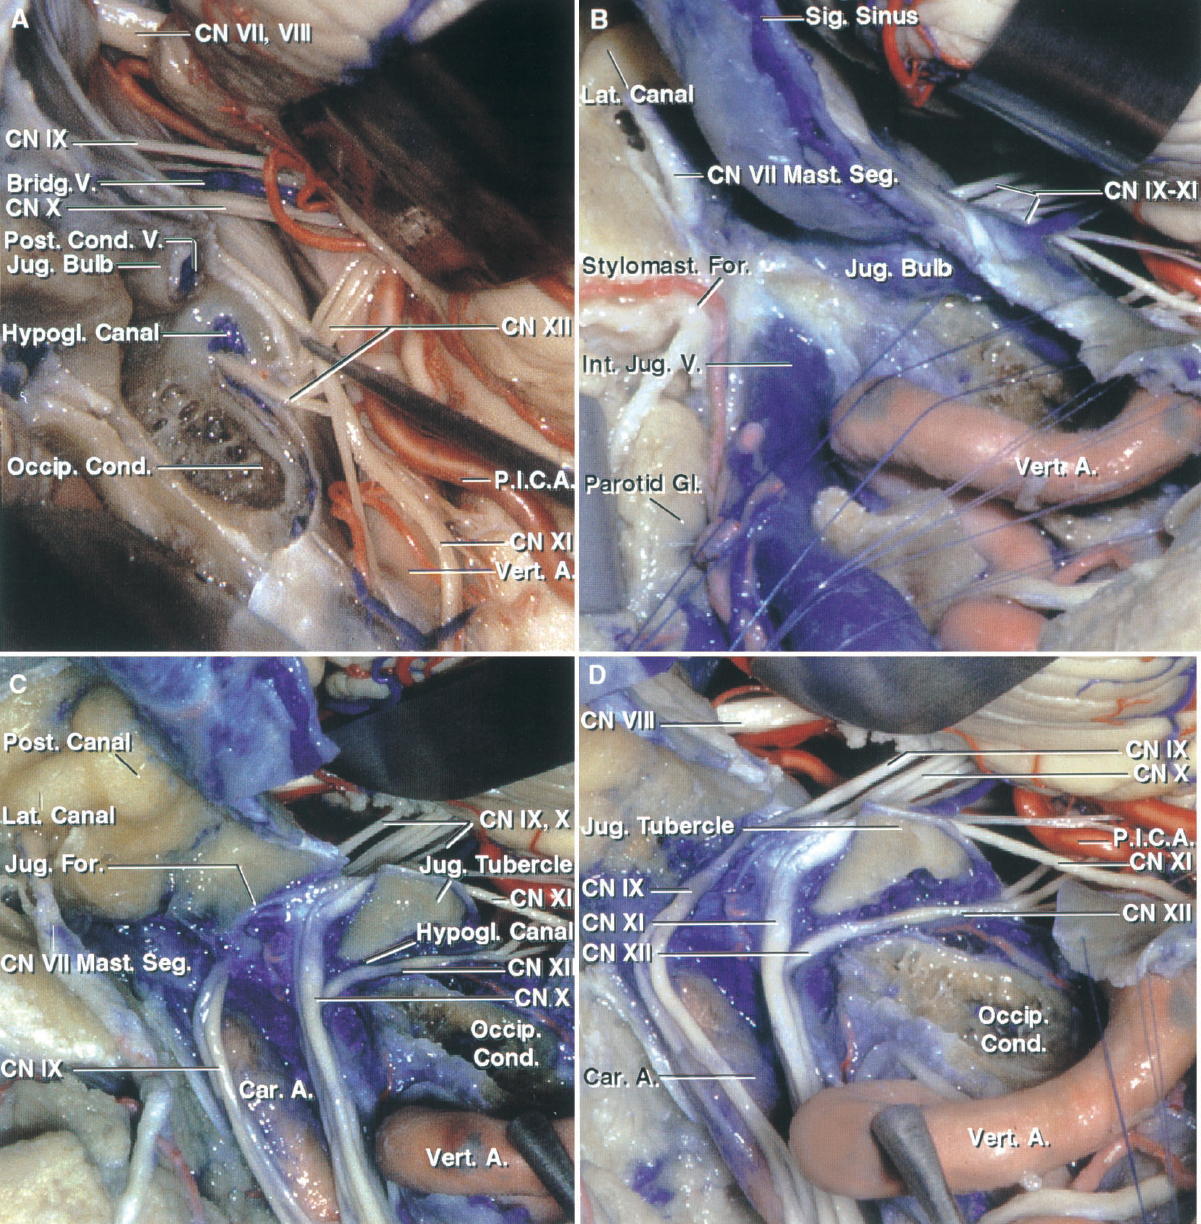 FIGURE 7.4. Relationships in the transcondylar, supracondylar, and paracondylar exposures. A, a left suboccipital craniectomy has been completed and the dura opened. The nerves entering the jugular foramen have been exposed. Bone has been removed above the occipital condyle to expose the hypoglossal nerve entering the hypoglossal canal. A bridging vein passes from the lateral aspect of the medulla to the jugular bulb. B, the rectus capitis lateralis has been detached from the cranial base and the jugular process of the occipital bone, which forms the posterior margin of the jugular foramen, has been removed to expose the jugular bulb. The posterior belly of the digastric muscle has been reflected forward and a mastoidectomy completed to expose the mastoid segment of the facial nerve. C, the jugular bulb and adjoining segment of the internal jugular vein have been removed to expose the glossopharyngeal, vagus, and accessory nerves passing through the jugular foramen and descending behind the internal carotid artery. The cortical bone lining the hypoglossal canal has been removed to expose the hypoglossal nerve and the venous plexus in the canal. The hypoglossal nerve joins the nerves exiting the jugular foramen to descend in the carotid sheath. A mastoidectomy has been completed to expose the bony capsule of the semicircular canals and the mastoid segment of the facial nerve. D, enlarged view of the nerves passing through the hypoglossal canal and jugular foramen in the supracondylar and paracondylar areas. A., artery; Bridg., bridging; Car., carotid; CN, cranial nerve; Cond., condyle; For., foramen; Gl., gland; Hypogl., hypoglossal; Int., internal; Jug., jugular; Lat., lateral, lateralis; Occip., occipital; P.I.C.A., posteroinferior cerebellar artery; Post., posterior; Seg., segment; Sig., sigmoid; Stylomast., stylomastoid; Vert., vertebral.